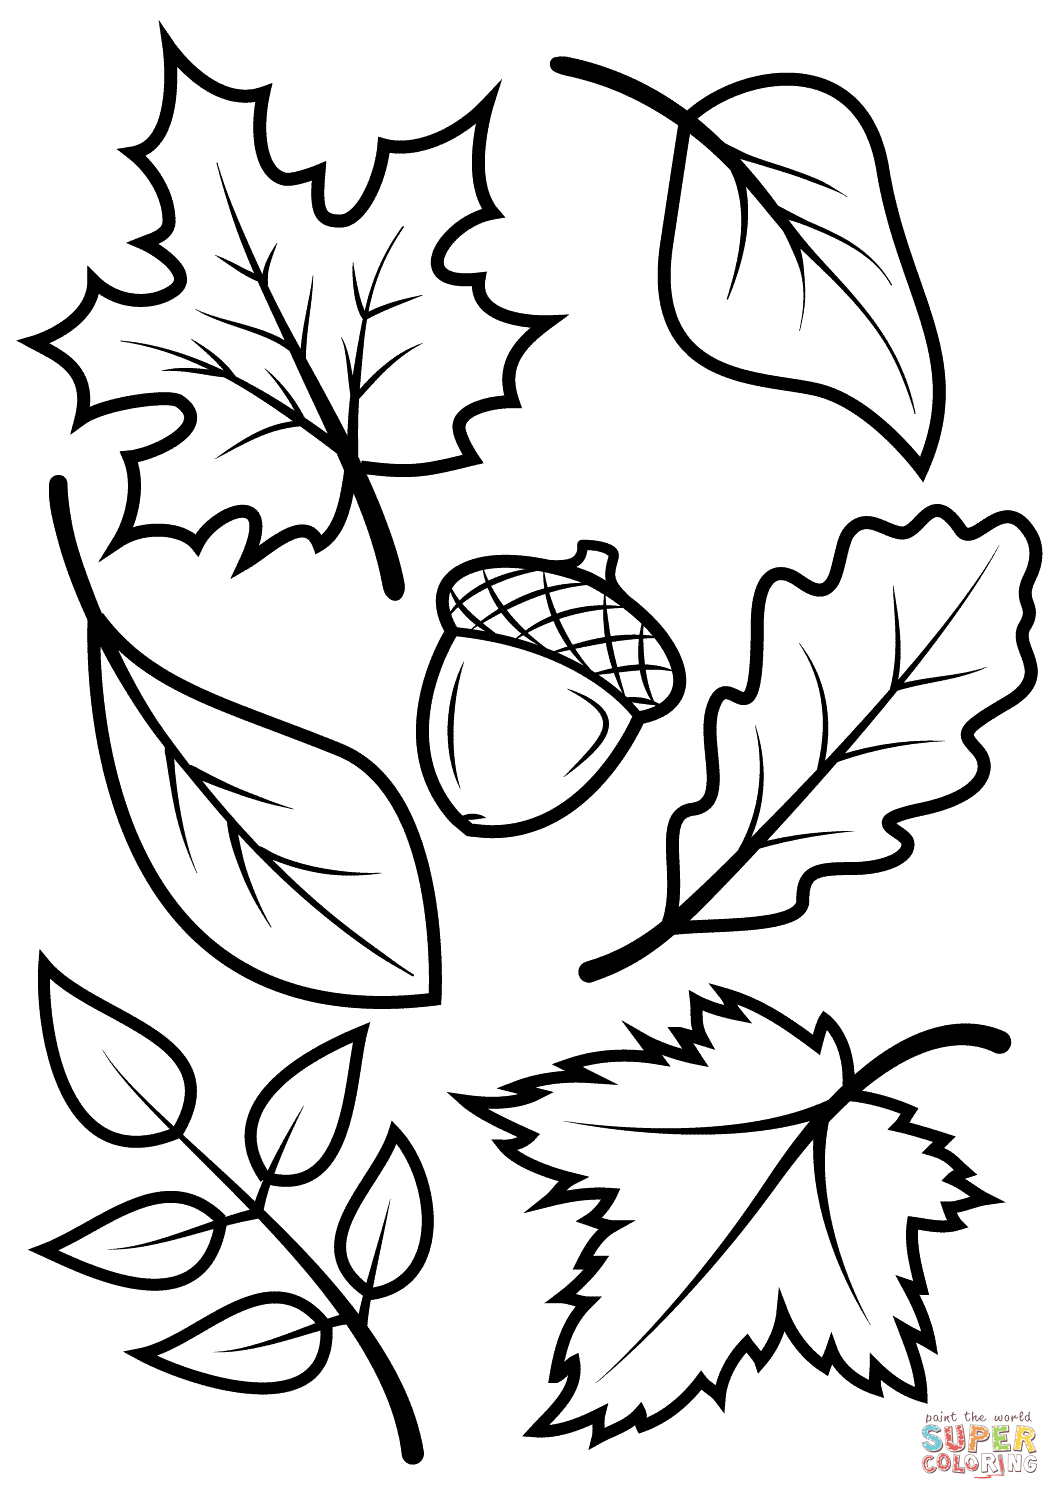 Fall Leaves And Acorn Coloring Page | Free Printable Coloring Pages - Free Printable Pictures Of Autumn Leaves